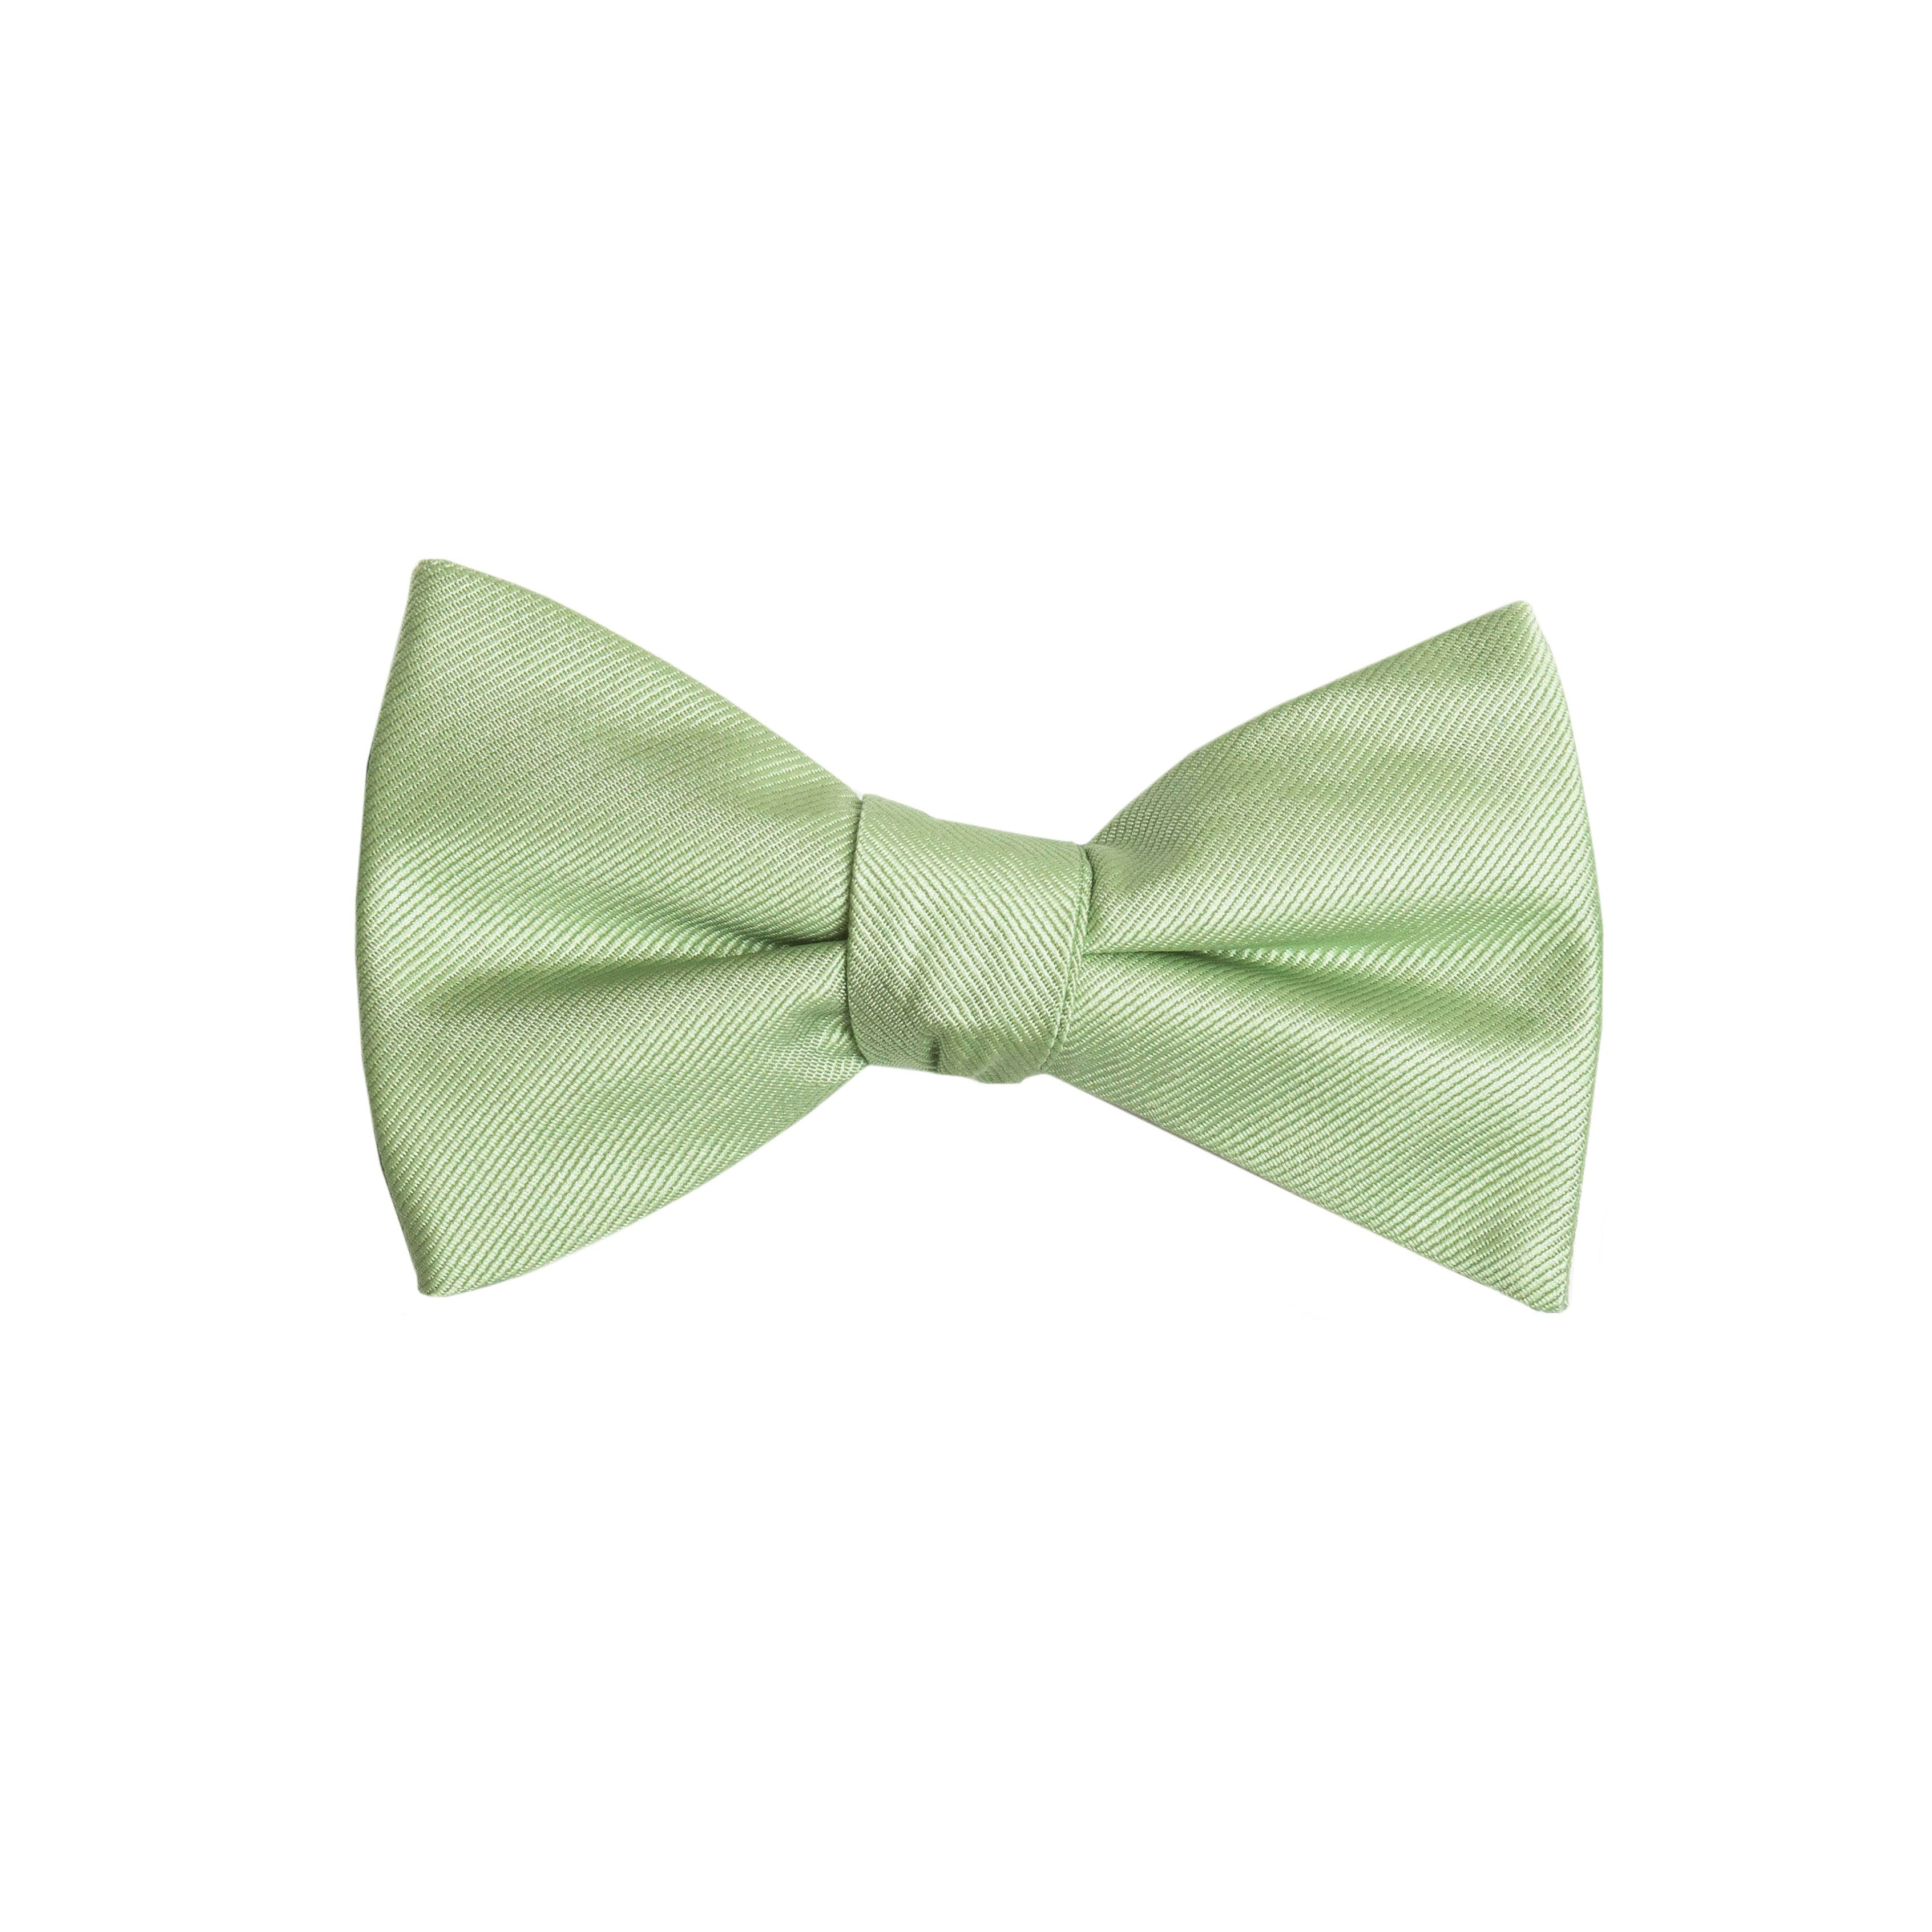 1 Tuxedo Solid Color Bow Ties for Boys Sage